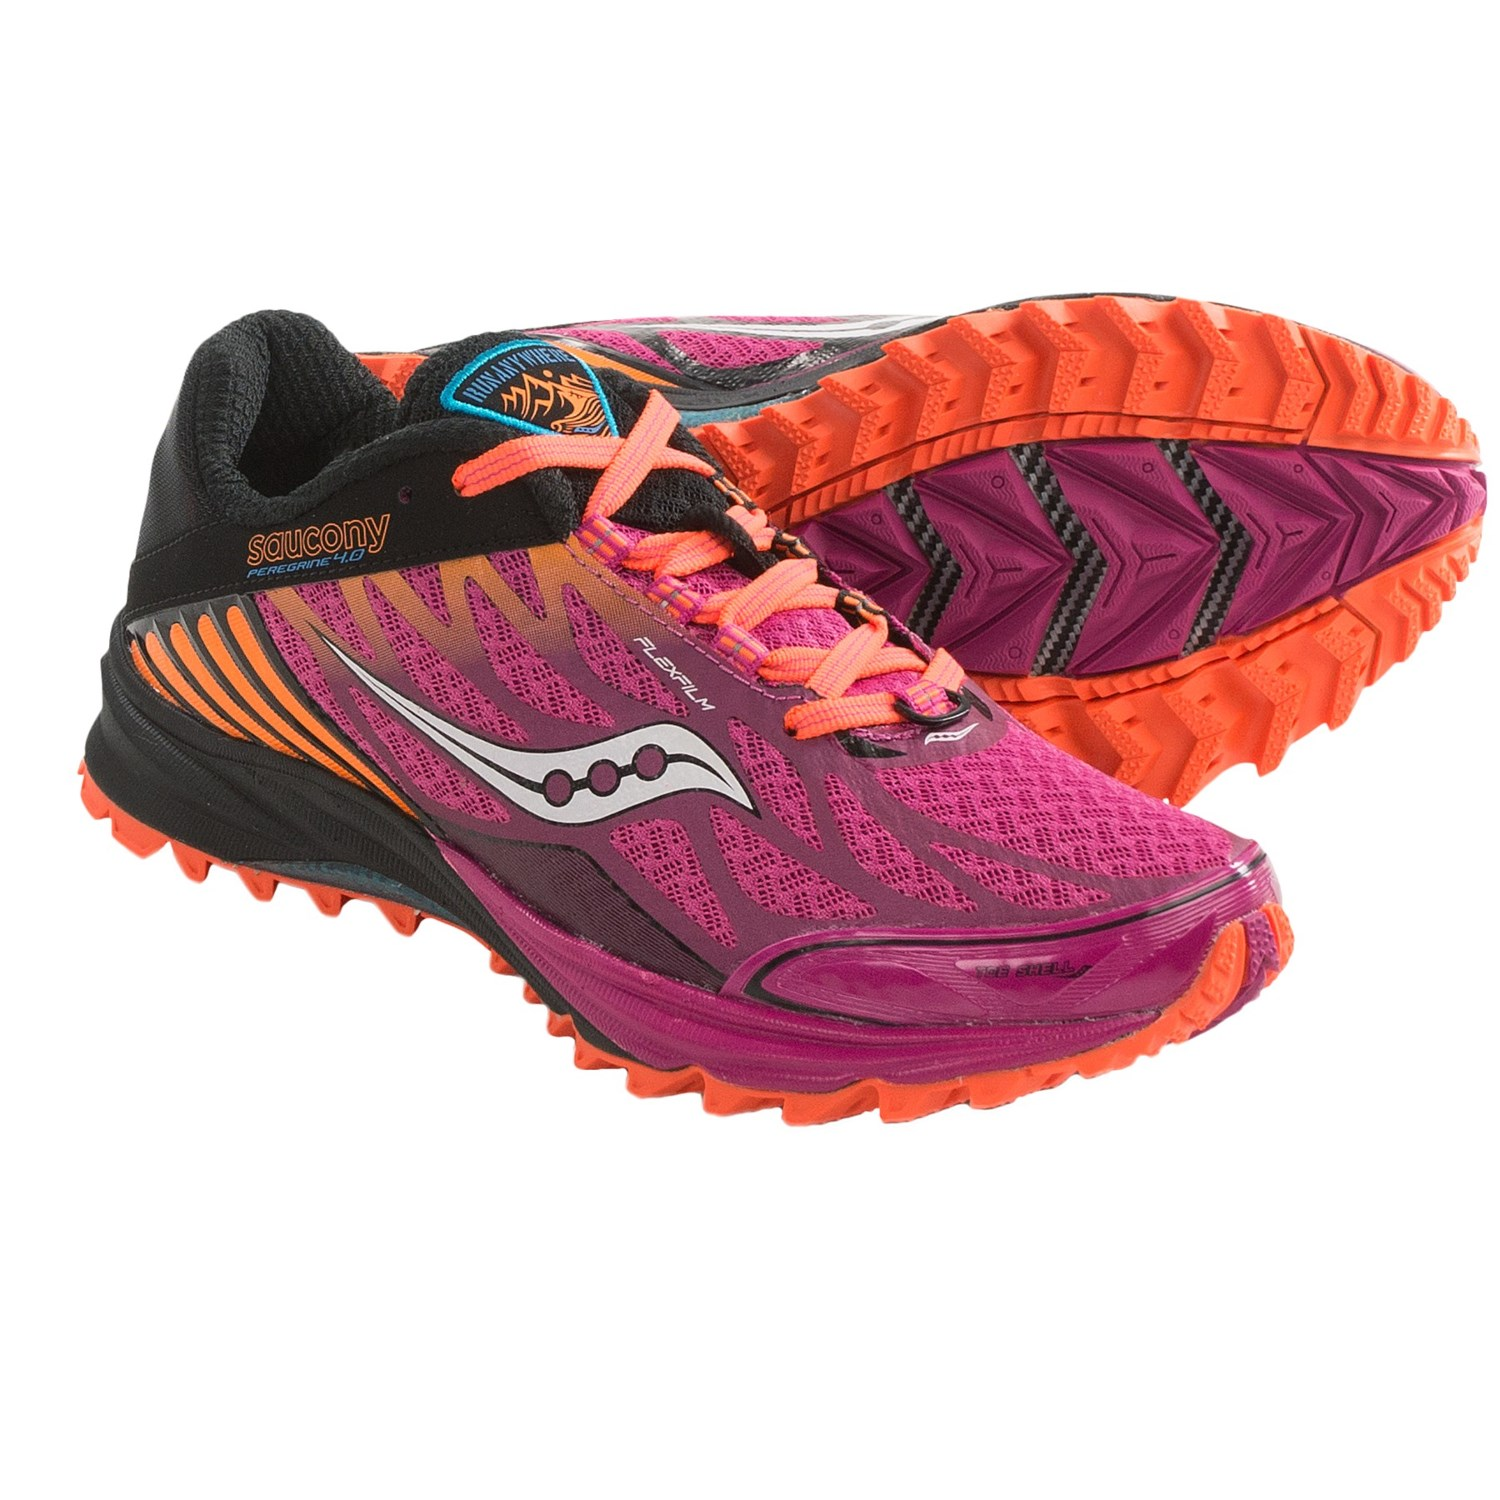 Discount Saucony Womens Running Shoes